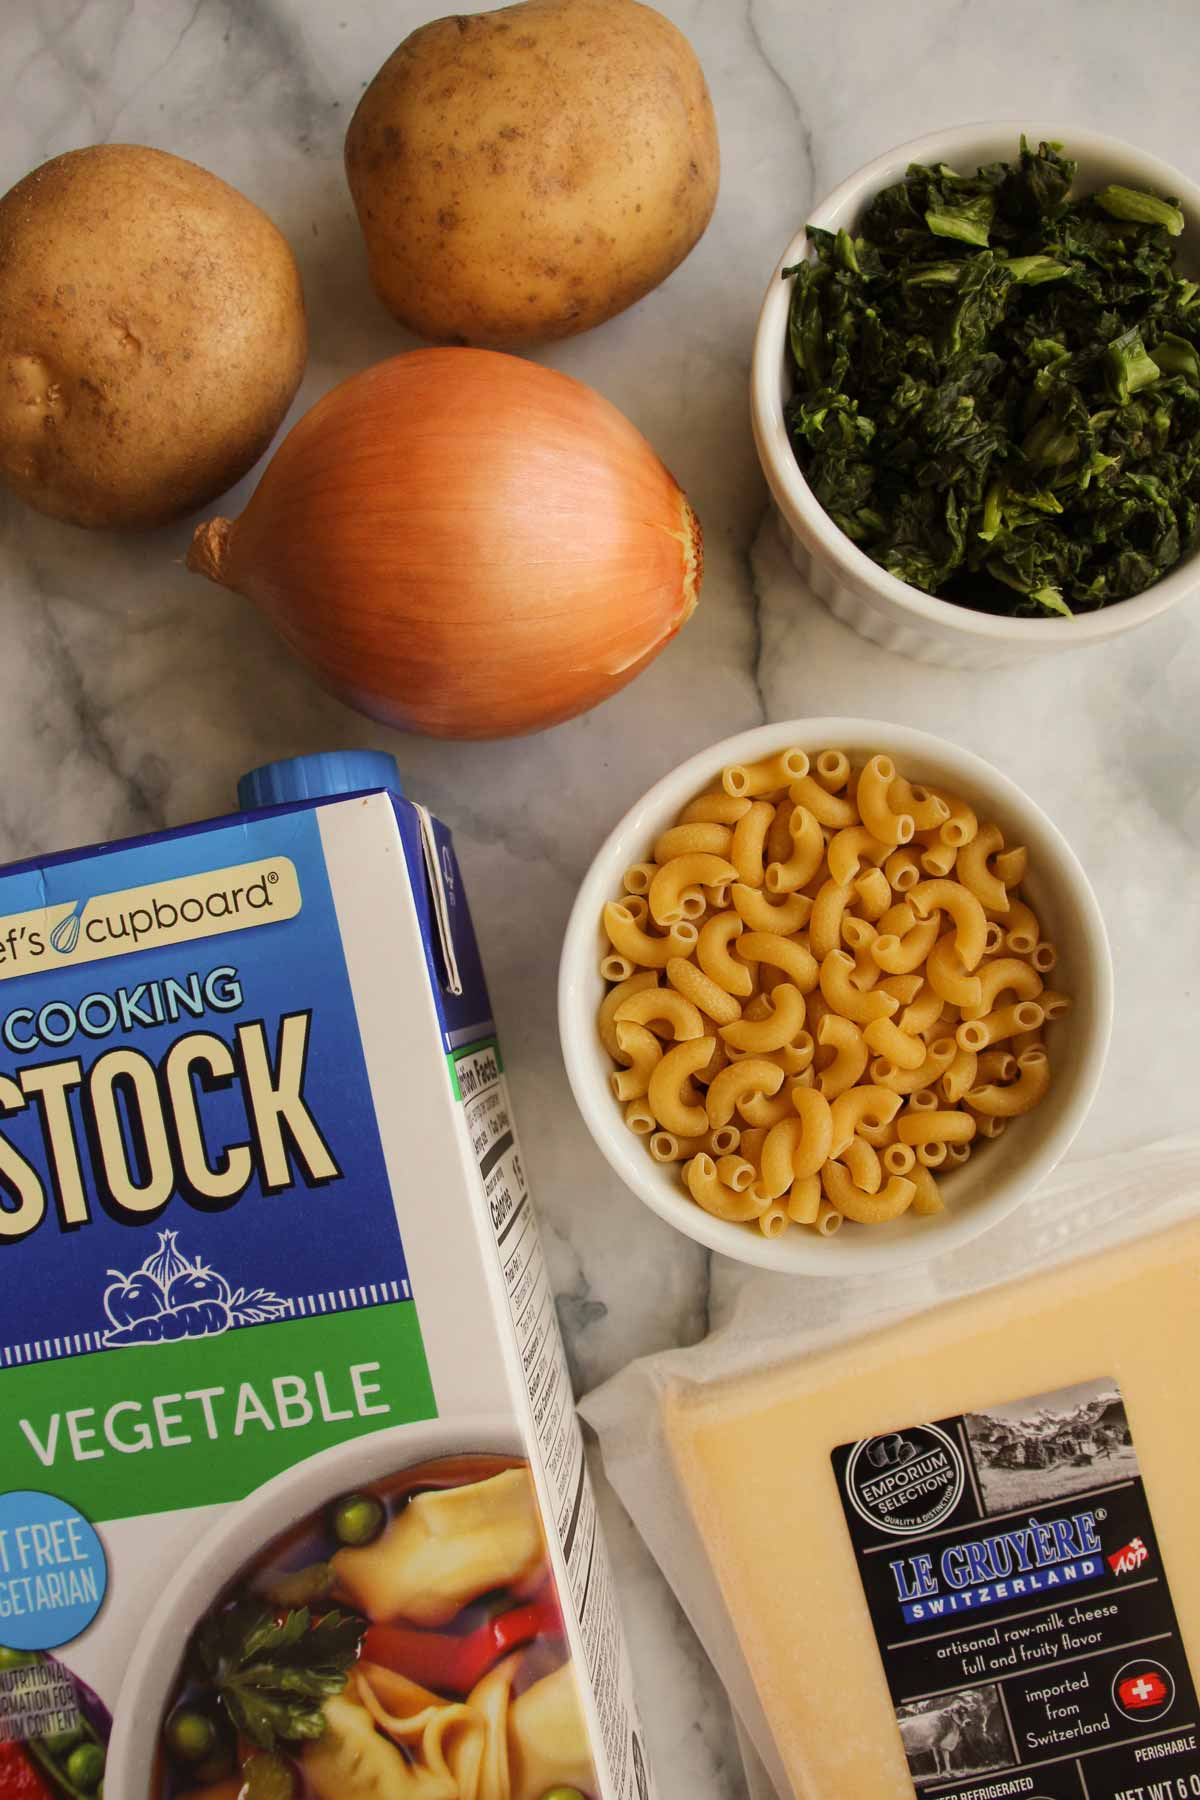 Potatoes, onion, cooked spinach, elbow macaroni, a carton of vegetable stock, and Gruyere cheese.